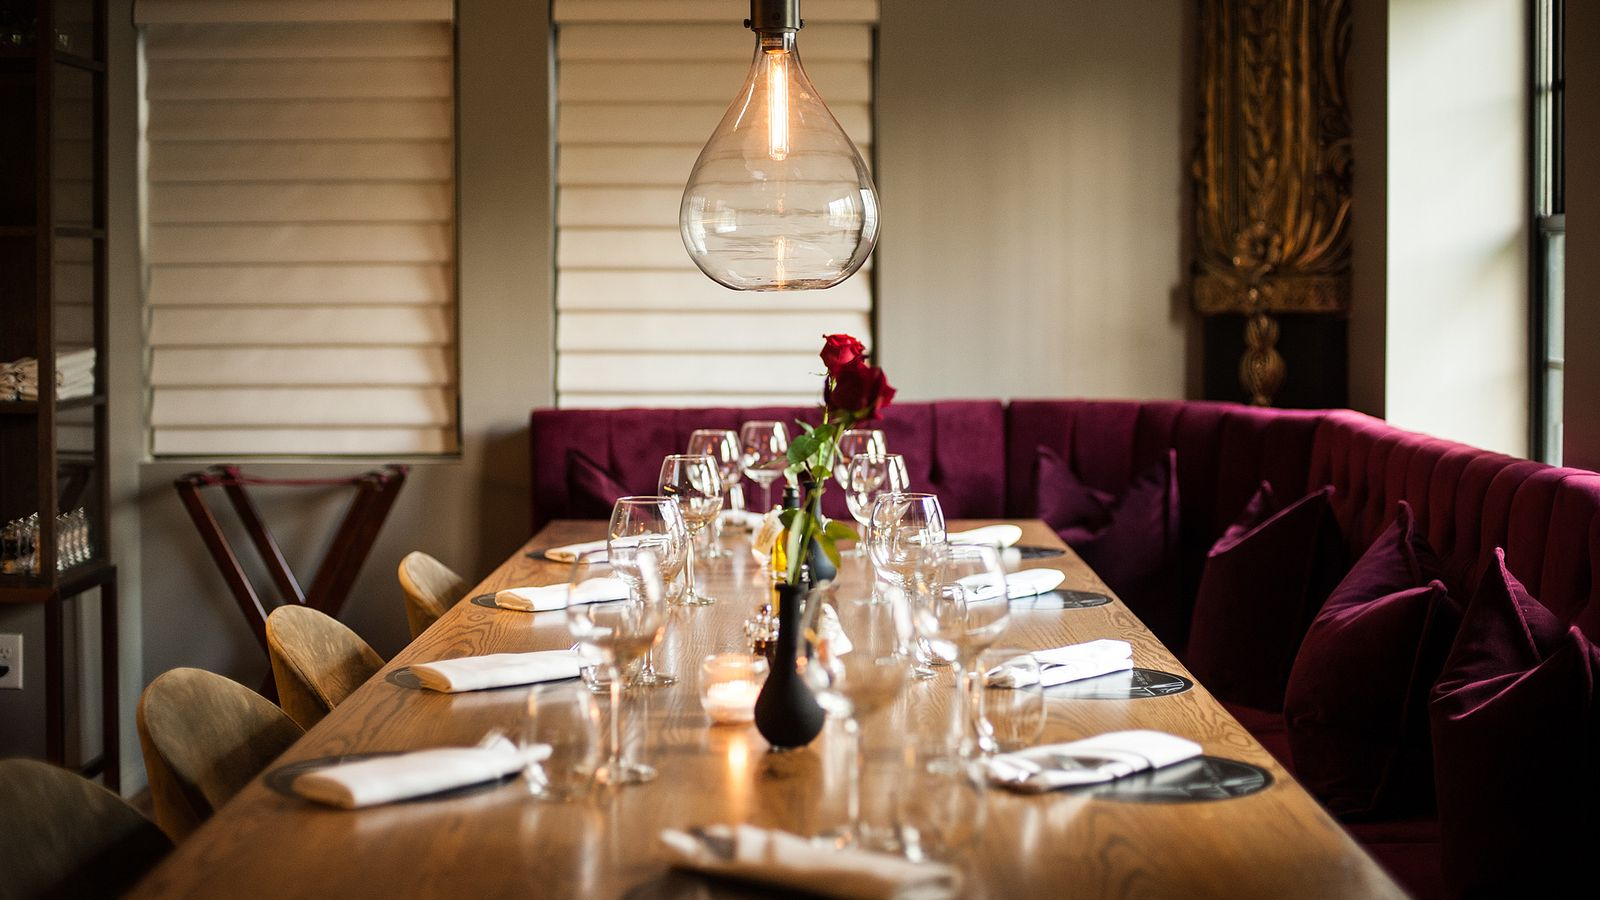 Host your own private dinner with the facc los angeles - Le petit salon paris ...